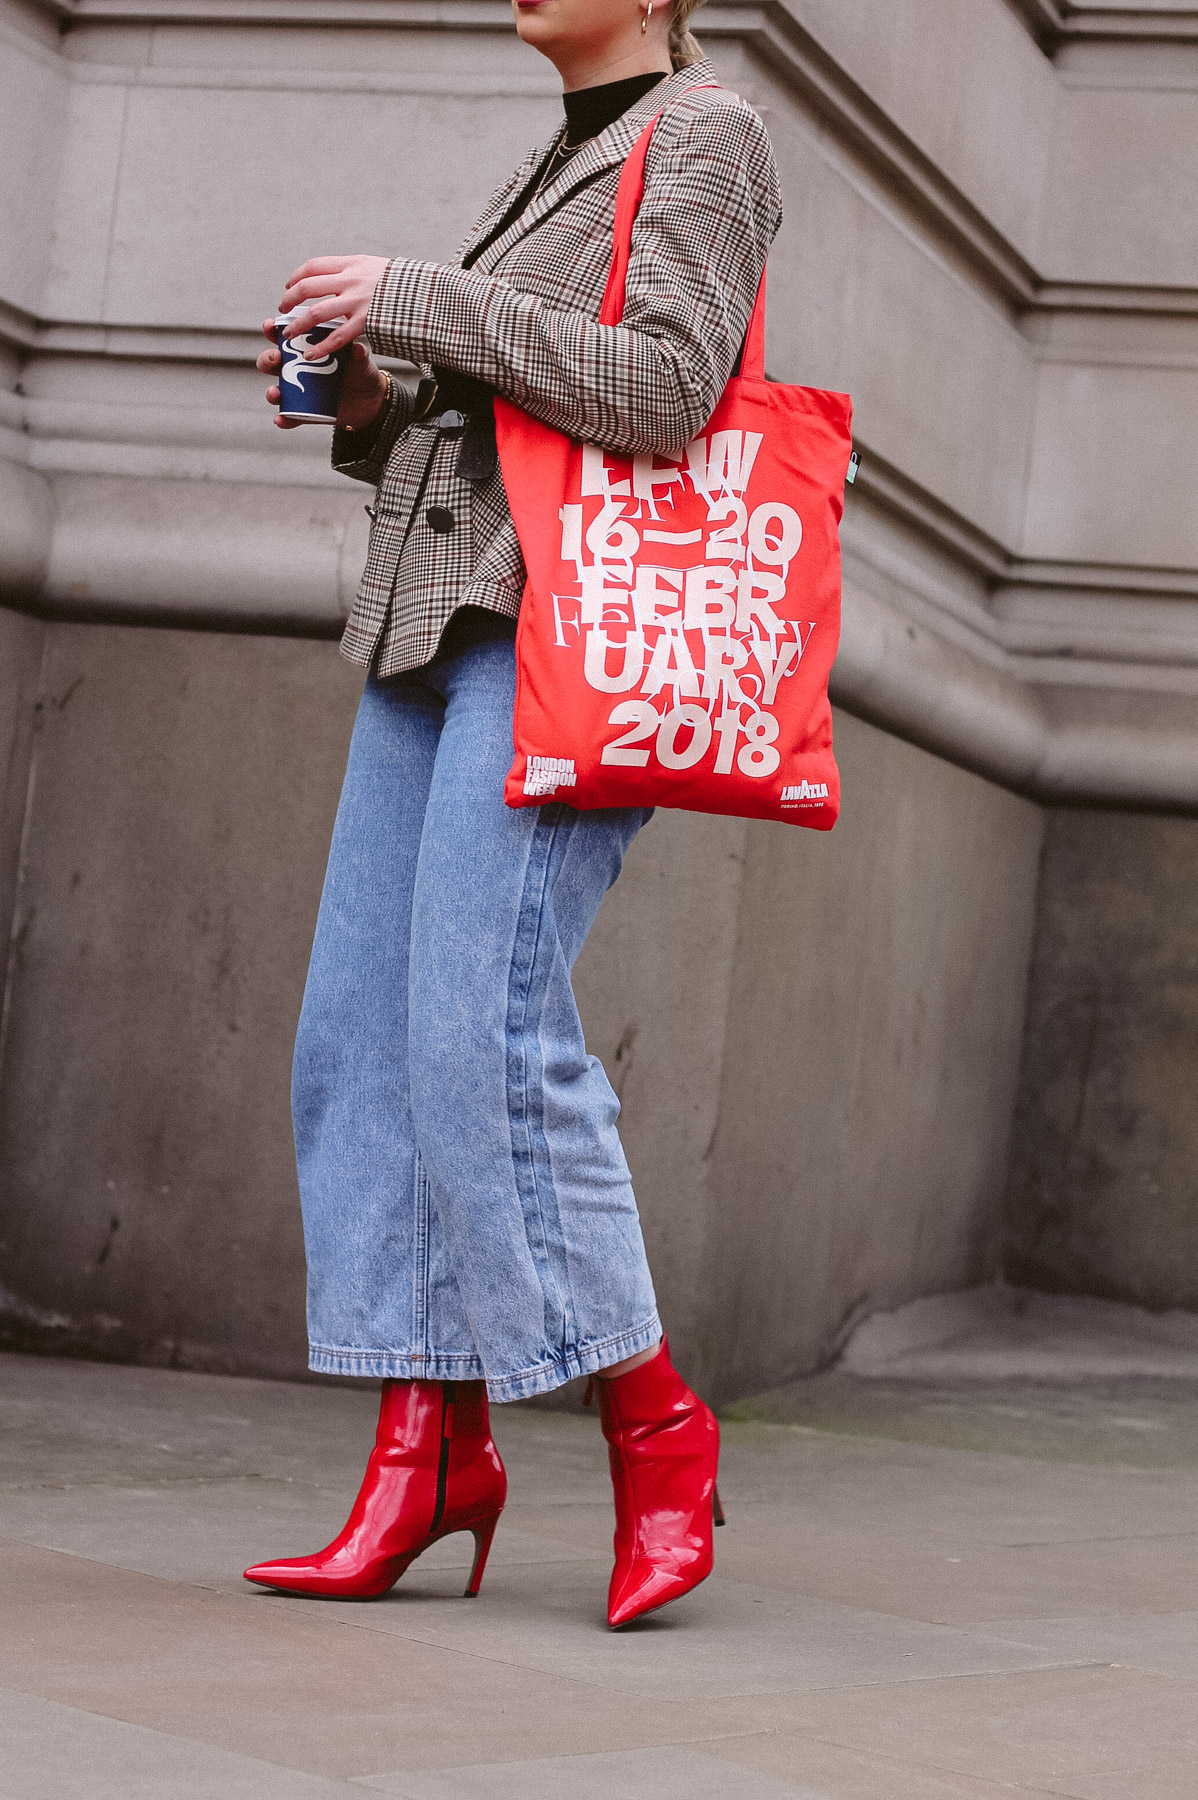 london fashion week aw18 outfit inspiration